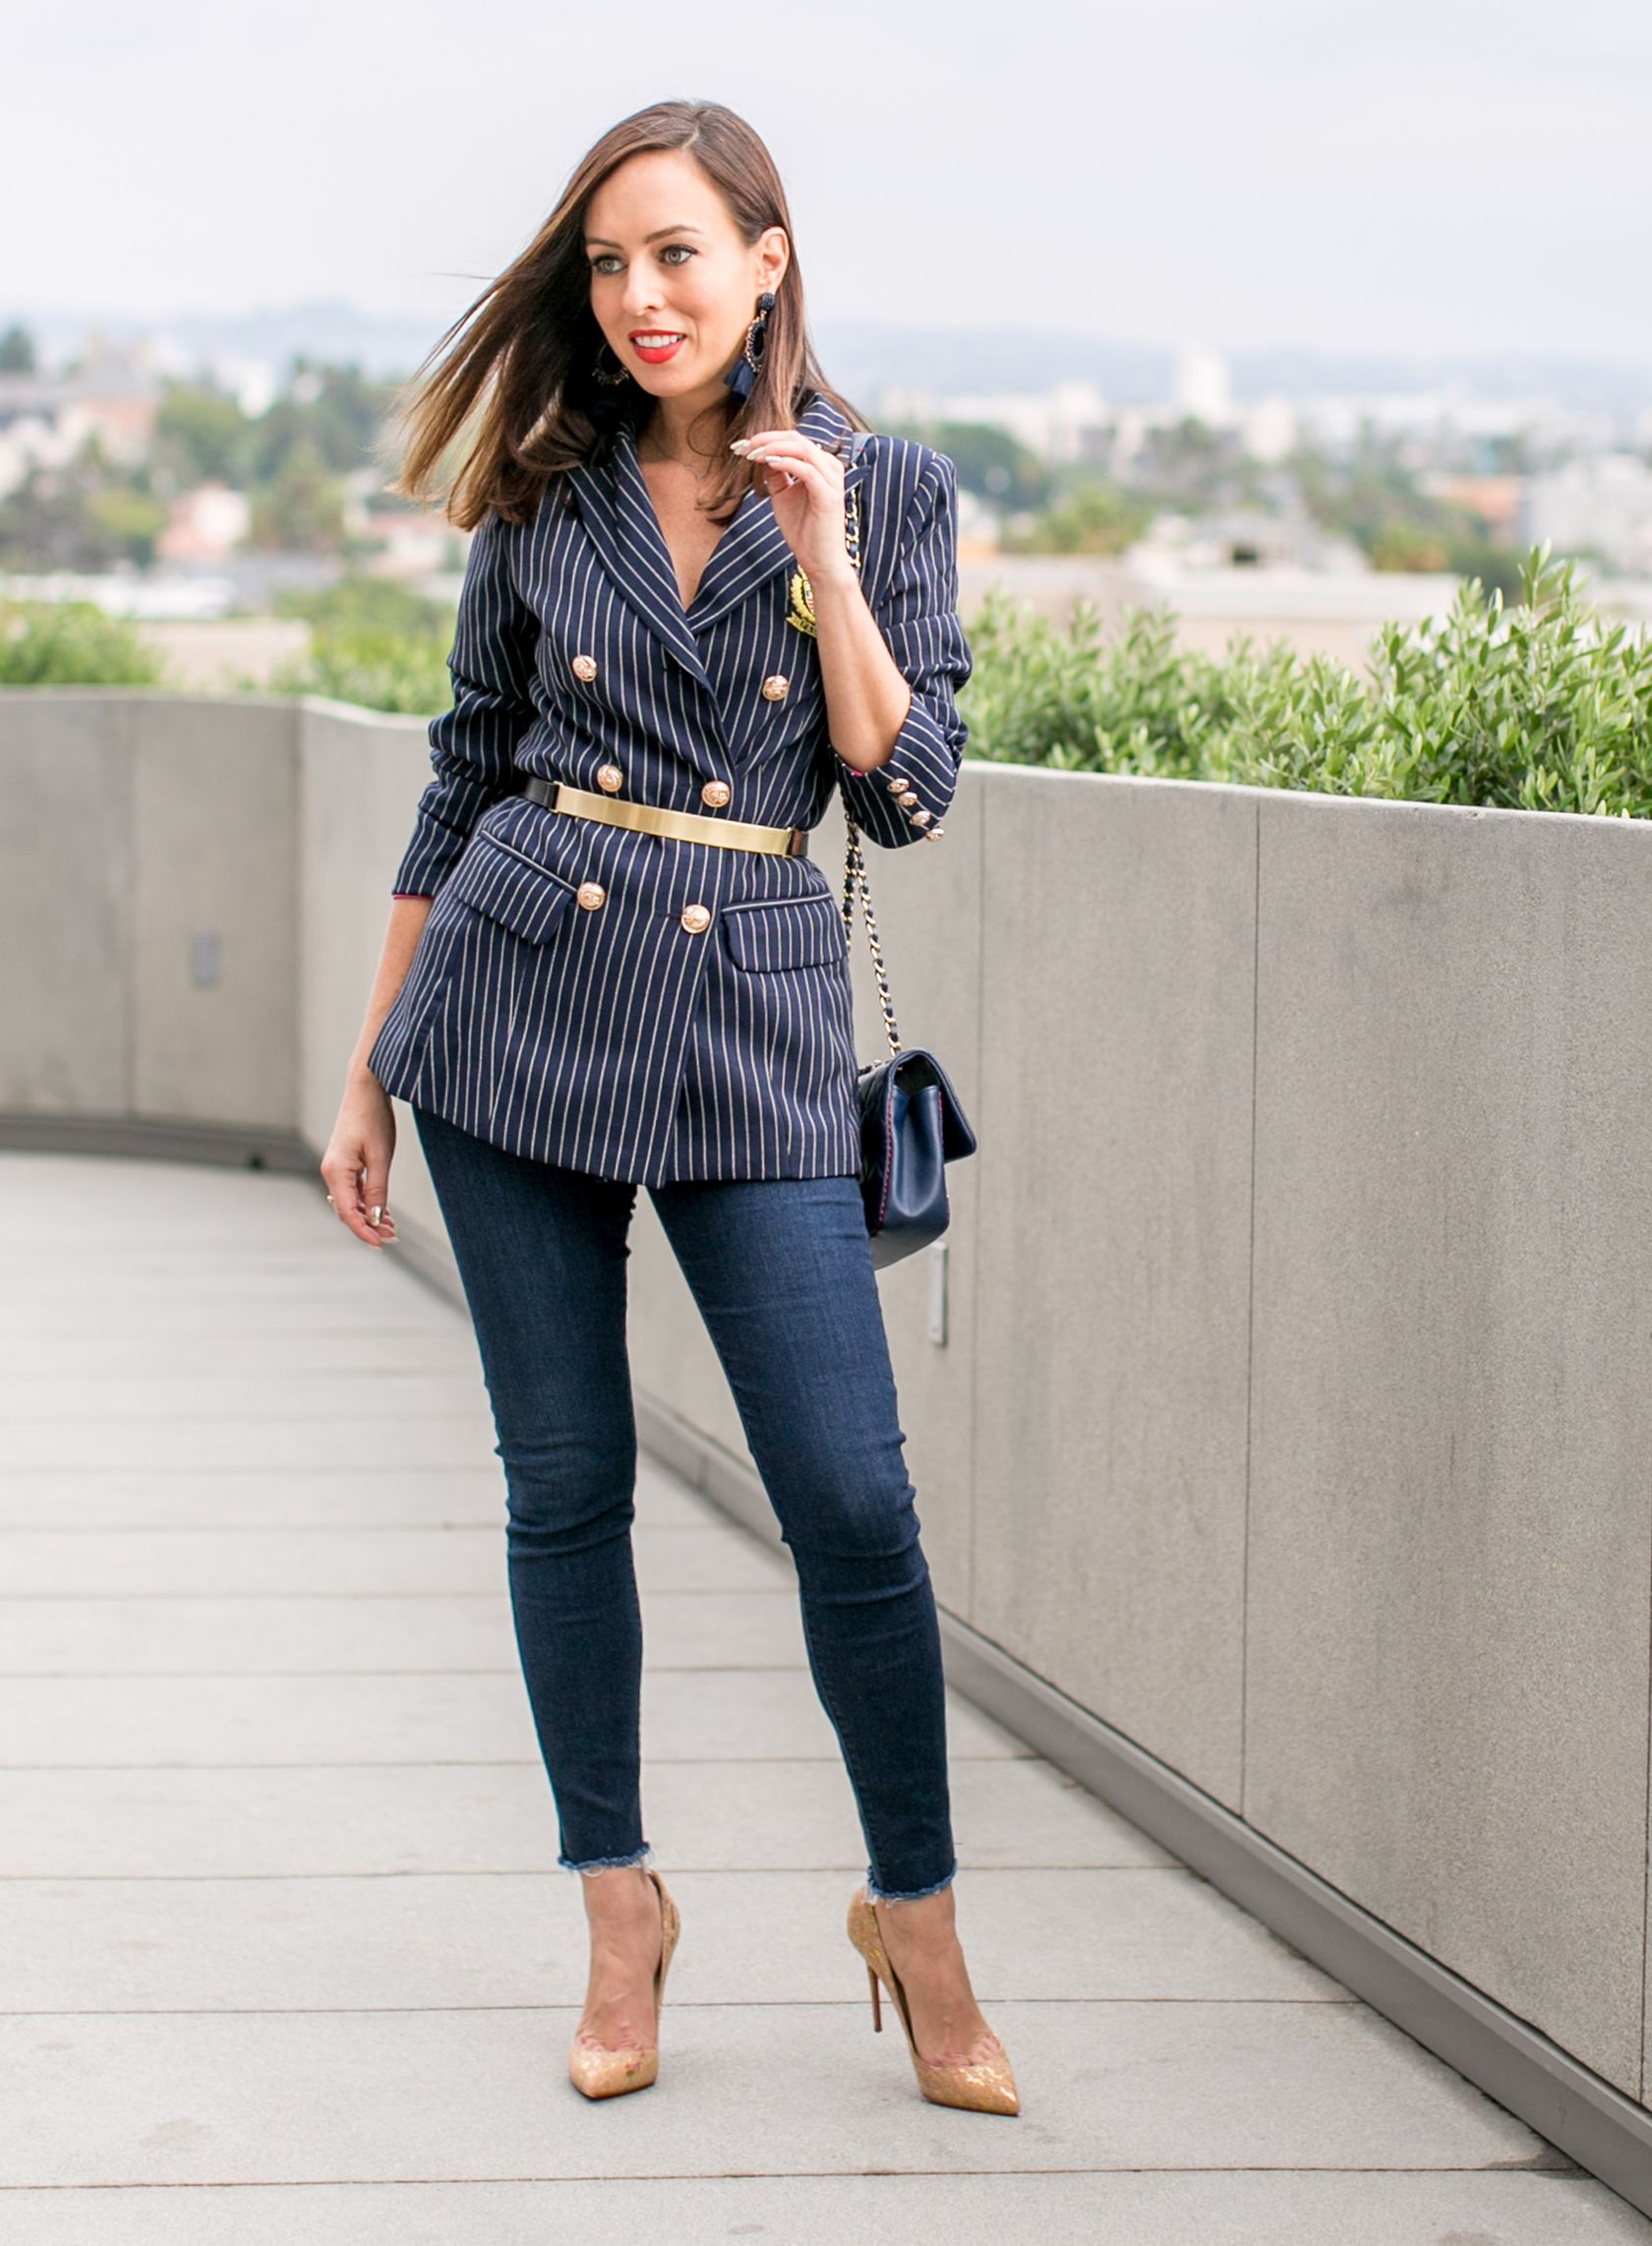 5e7f27b8fbc Sydne Style shows how to wear a blazer in pinstripes and gold belt with dark  skinny jeans  blazer  chanel  chanelbag  casualstyle  casualoutfit  jeans    ...